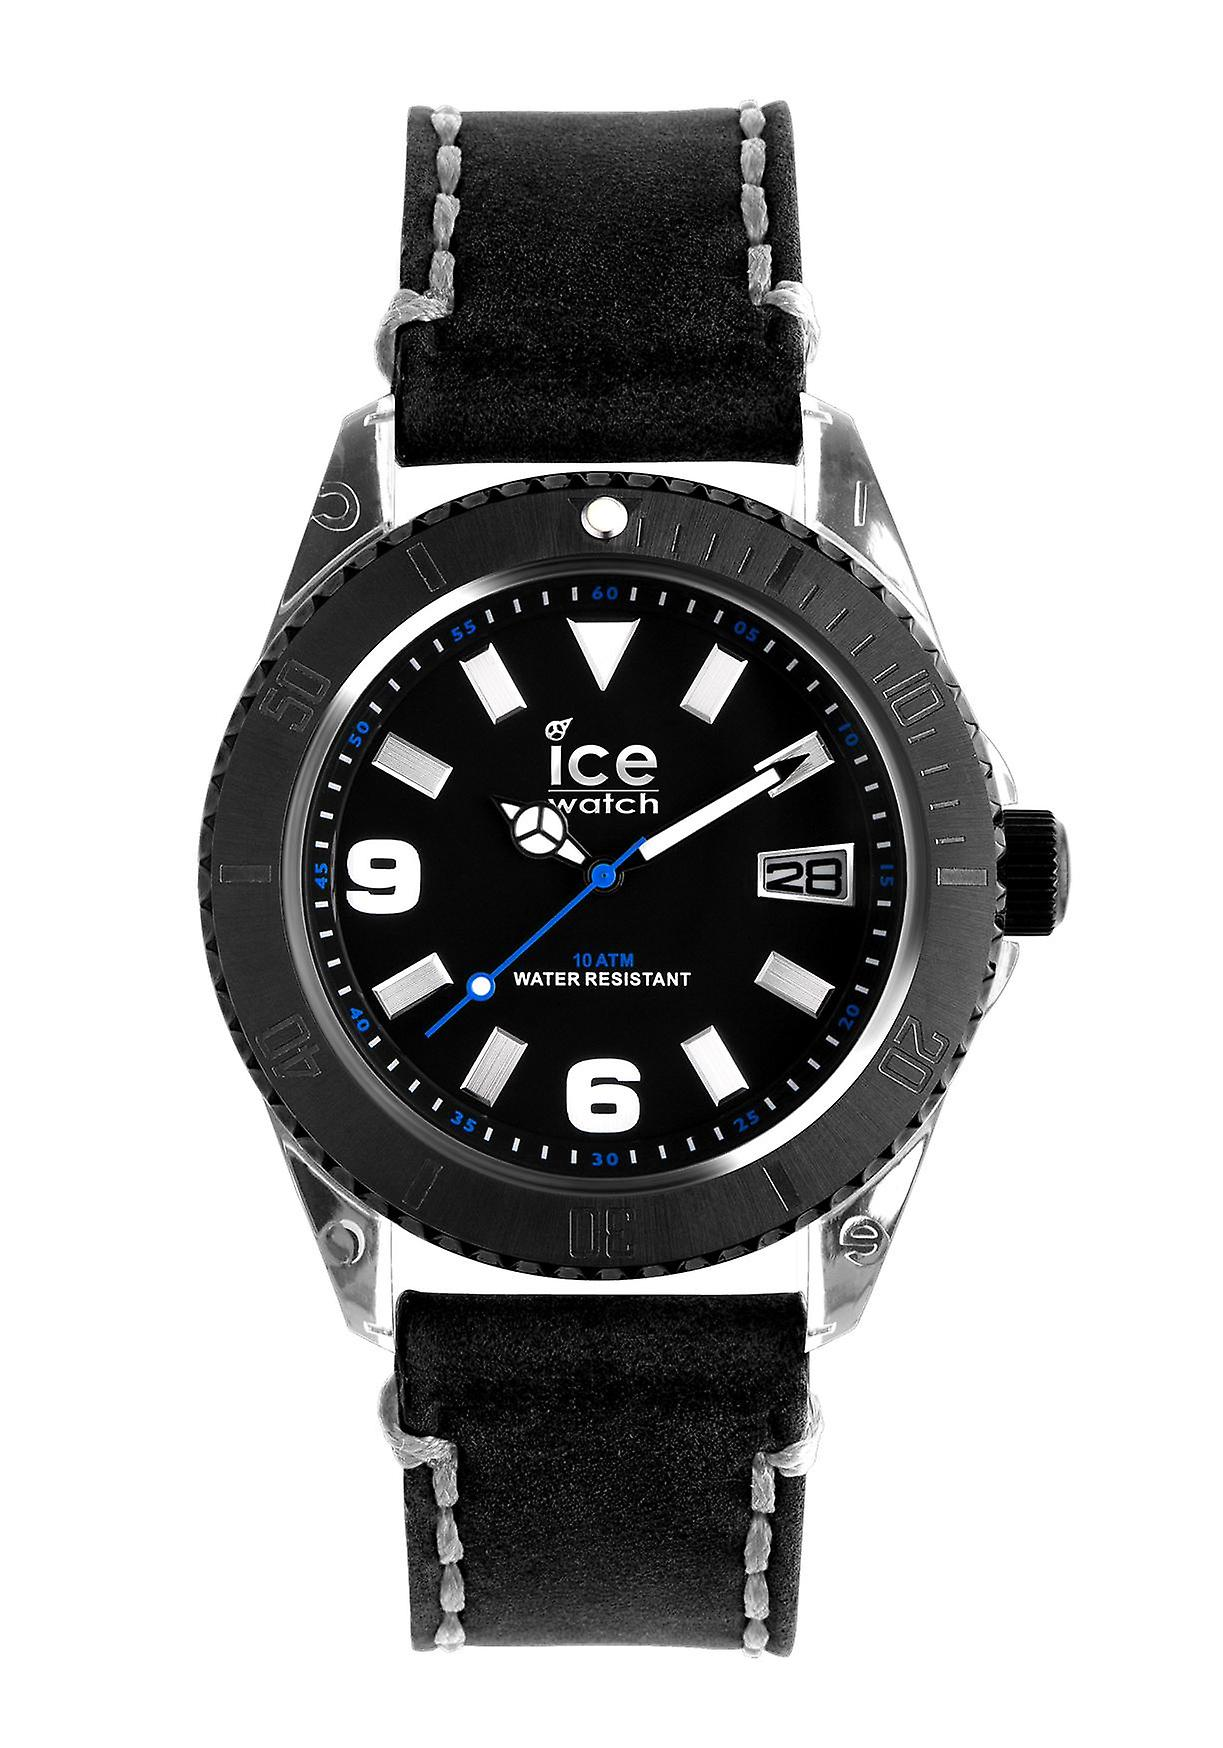 Ice-Watch Ice-Vintage Big Black-Grey Armbanduhr (VT. BK. B.L.13)